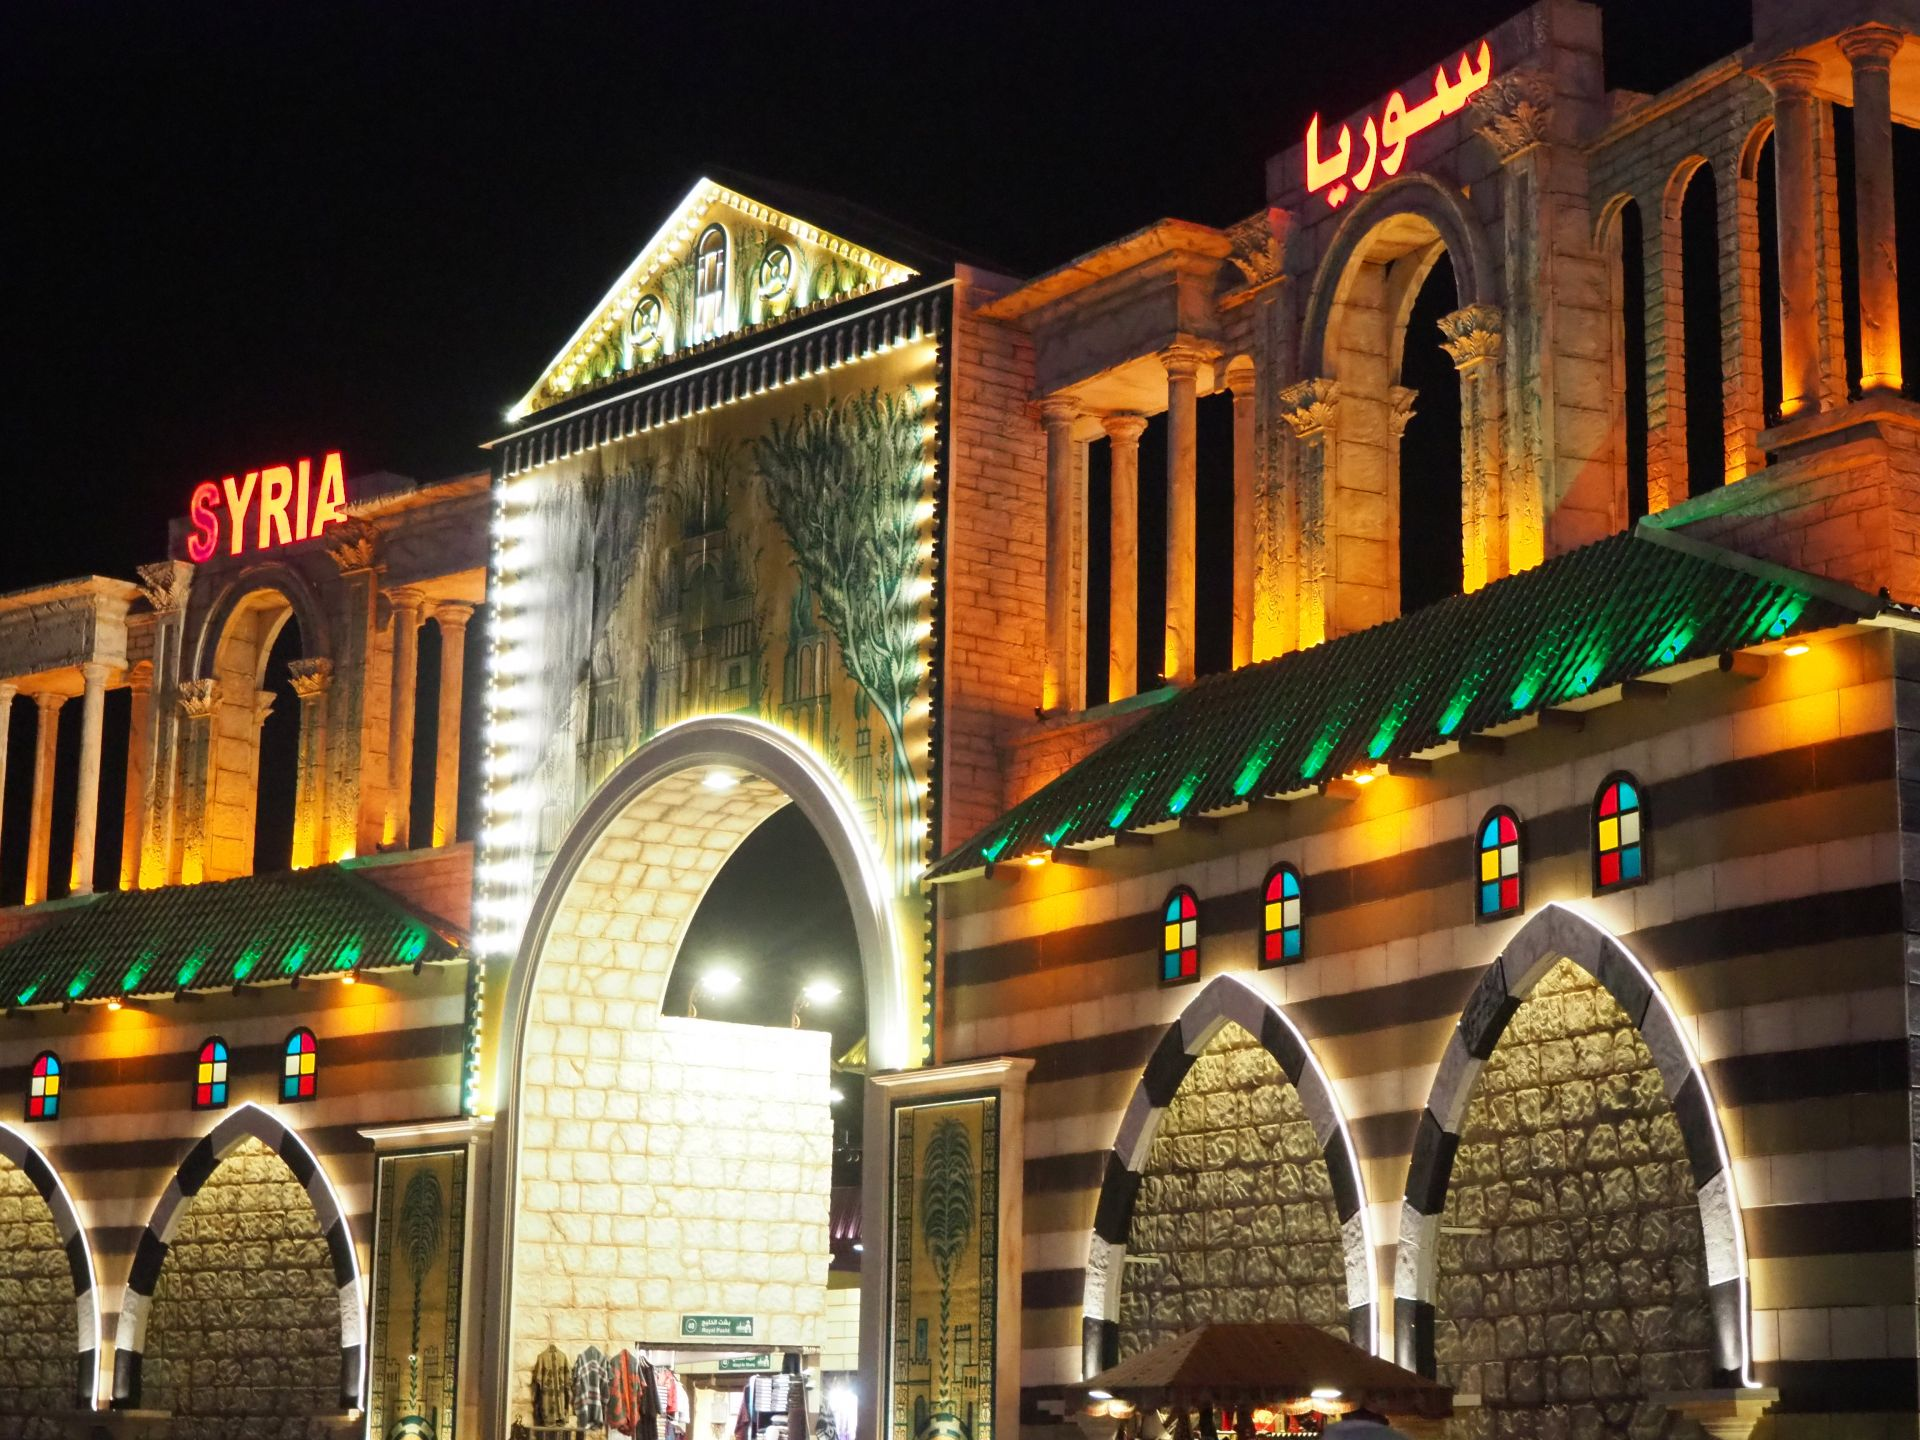 Syria Pavillion in Global Village